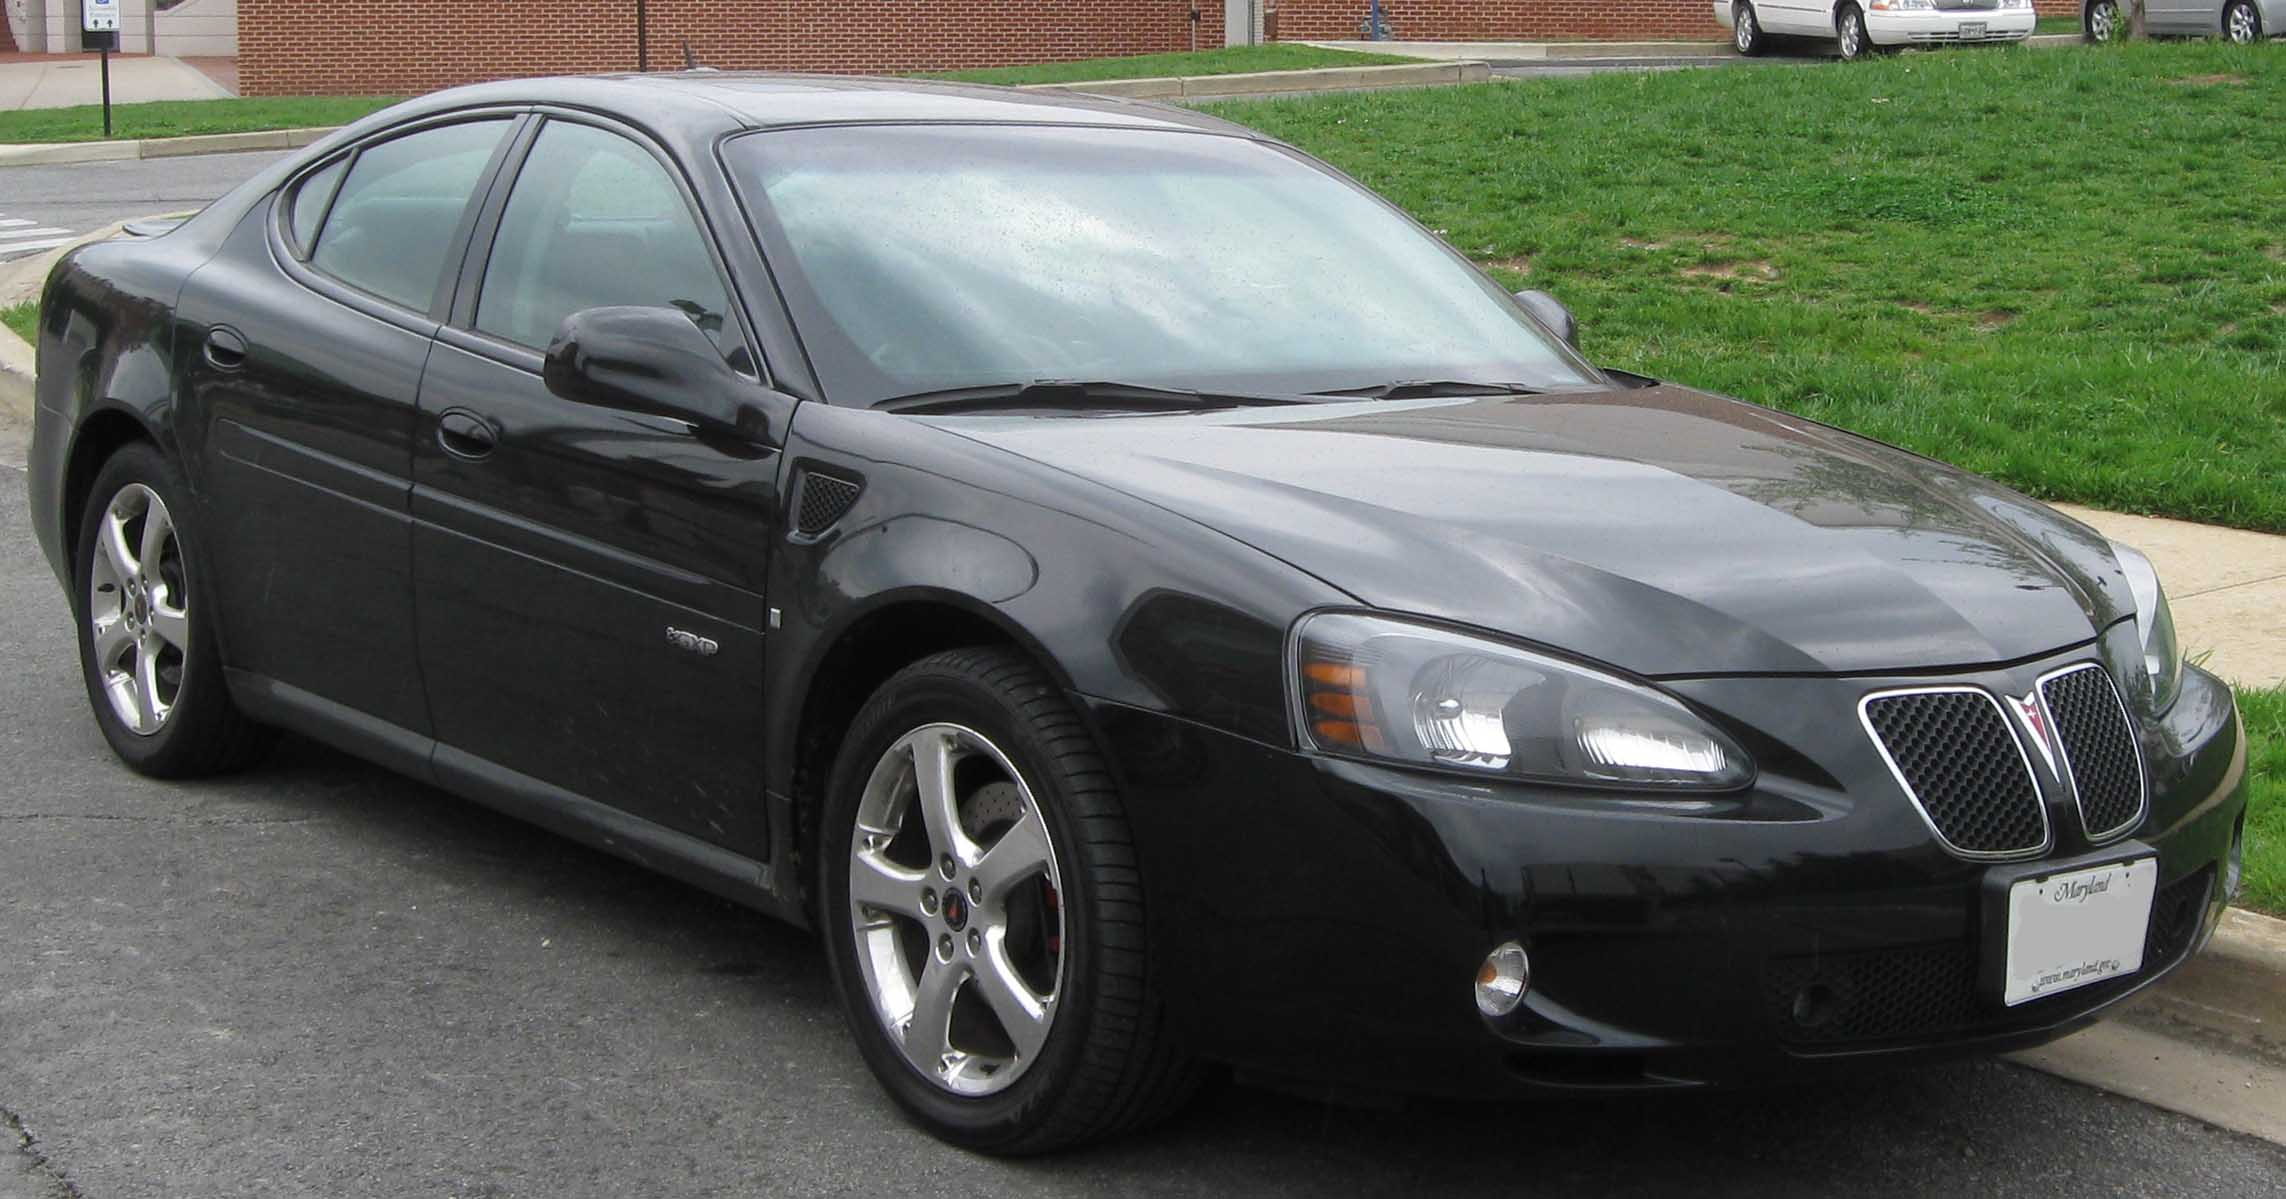 file pontiac grand prix gxp jpg wikimedia commons. Black Bedroom Furniture Sets. Home Design Ideas